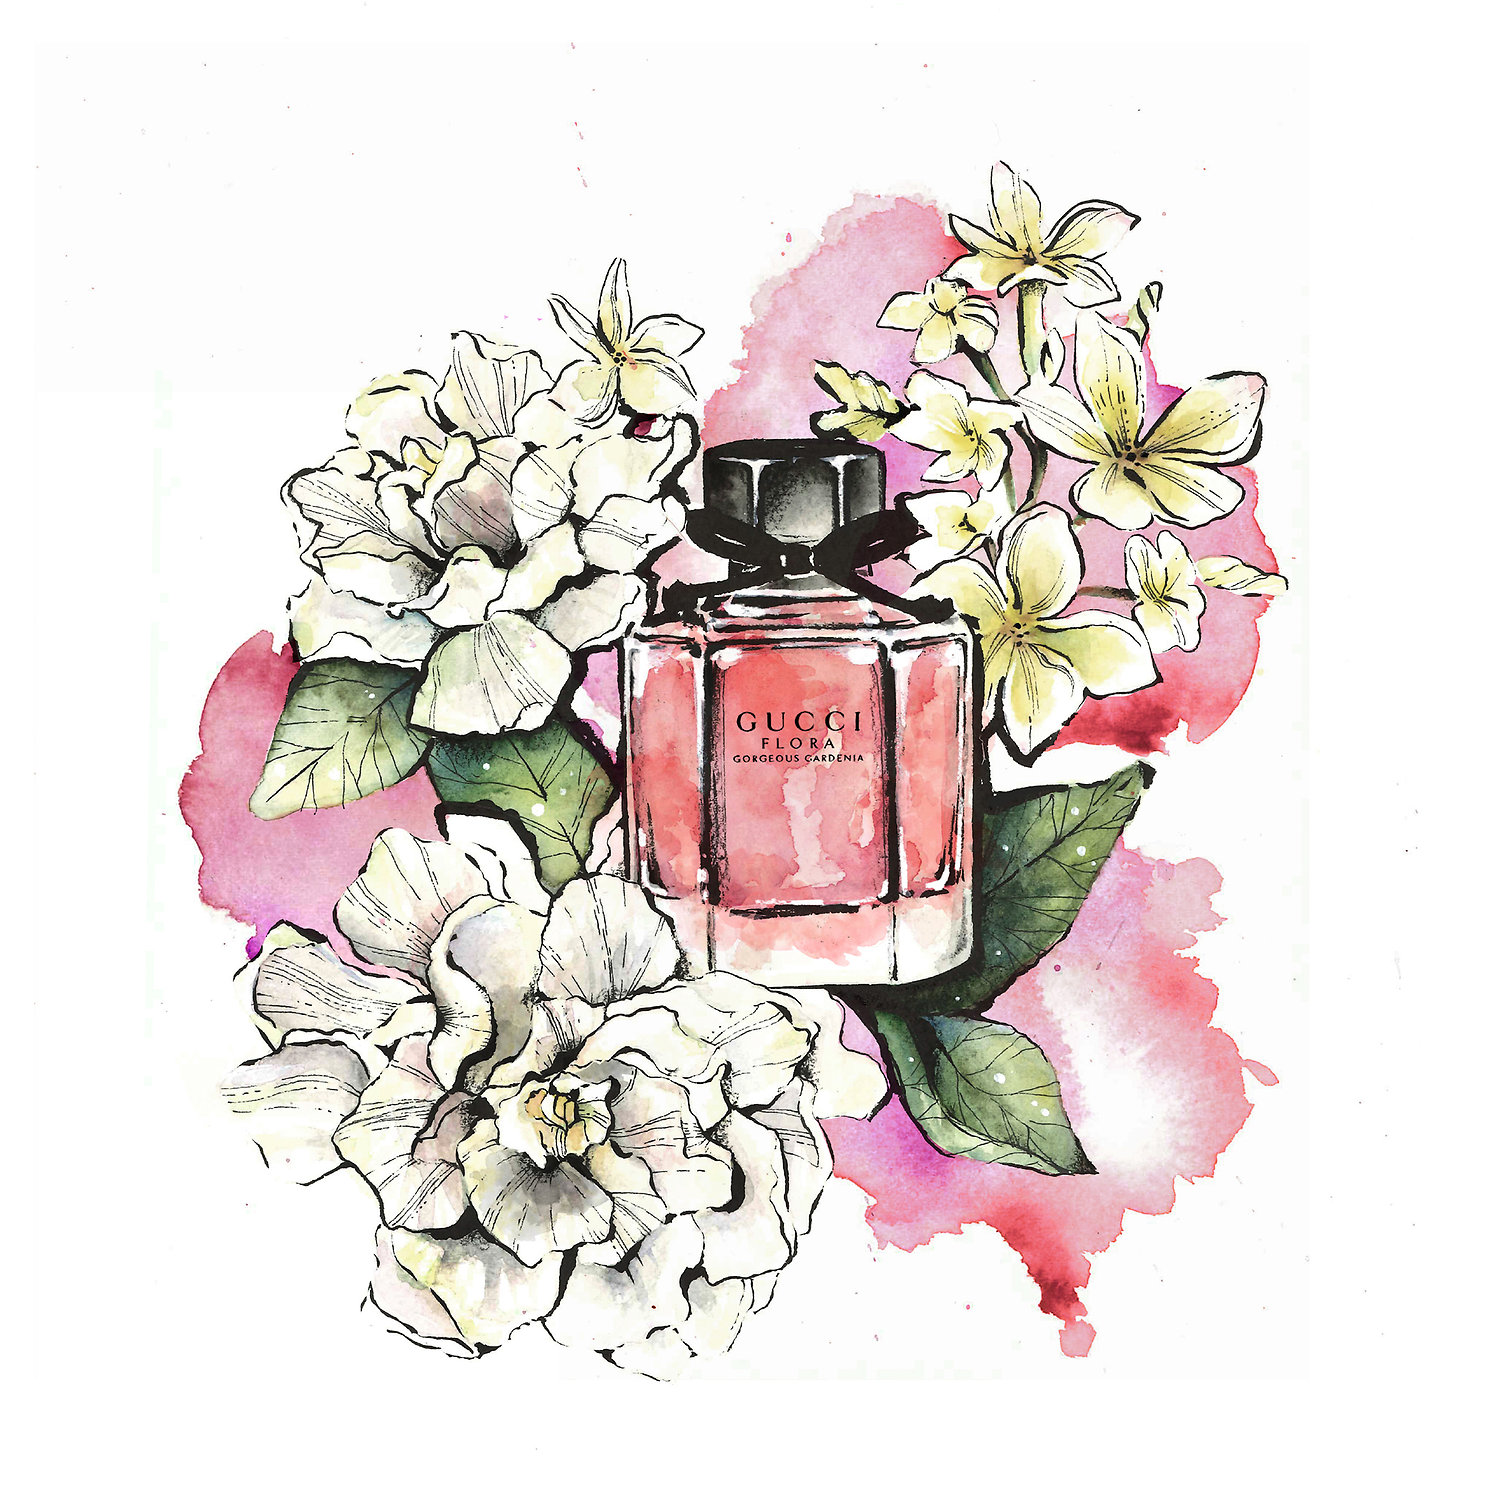 Flora Gorgeous Gardenia Limited Edition Gucci Perfume A New